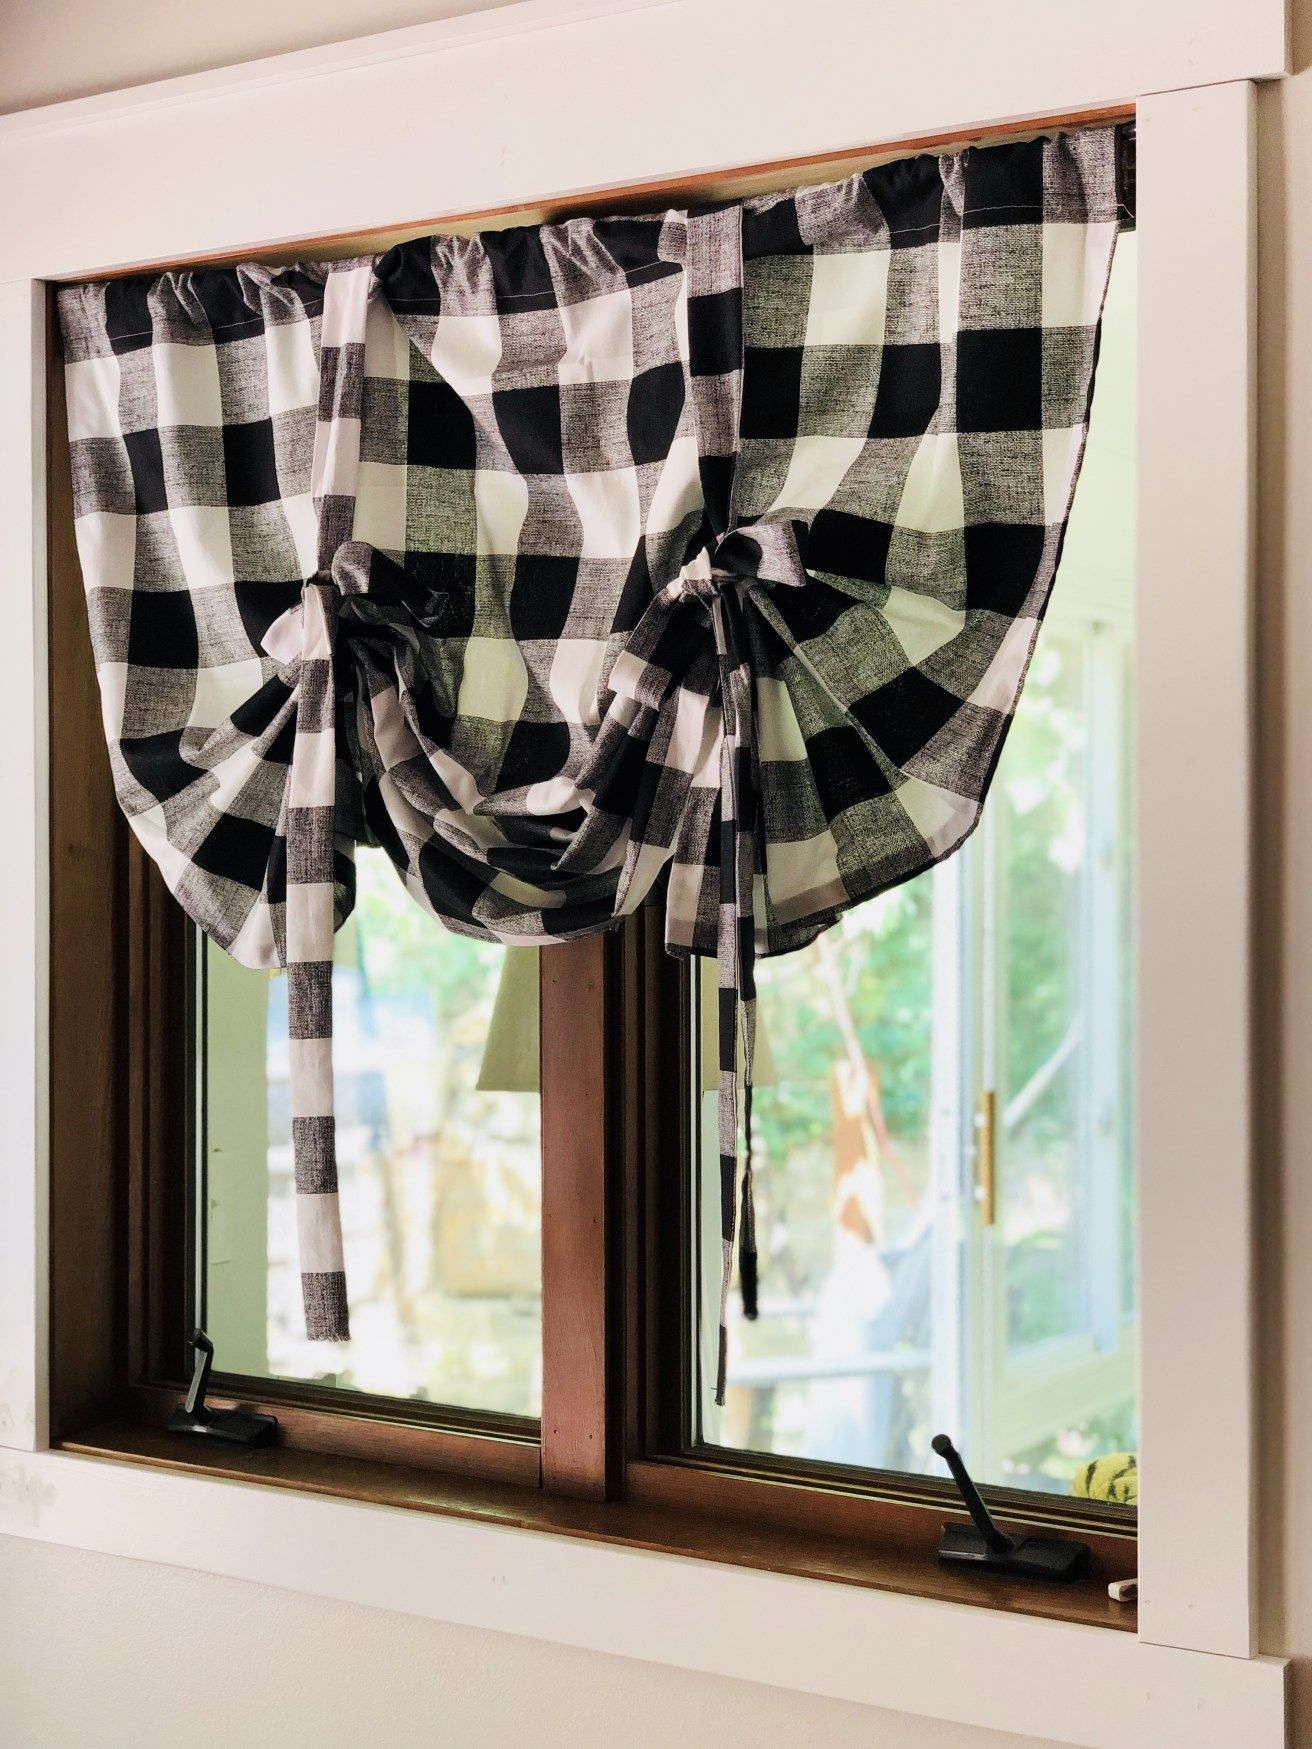 DIY How to Make Your Own Tie-Up Curtains - | Tie up ...